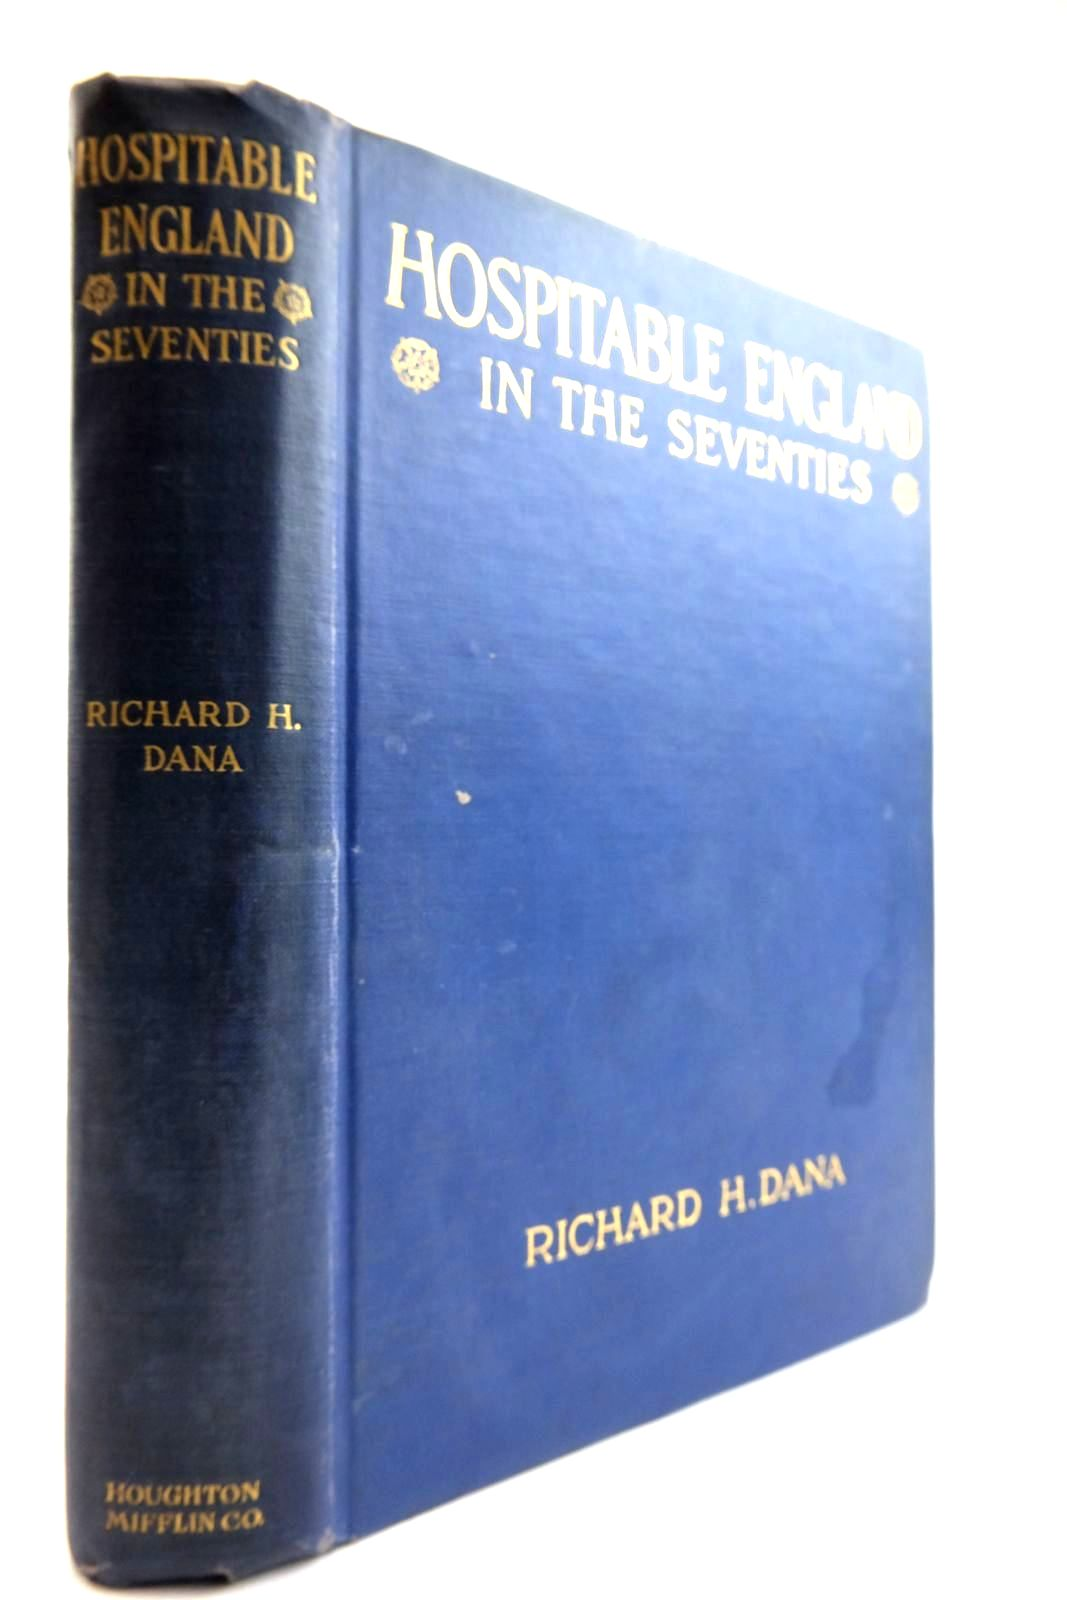 Photo of HOSPITABLE ENGLAND IN THE SEVENTIES: THE DIARY OF A YOUNG AMERICAN 1875-1876 written by Dana, Richard Henry published by Houghton Mifflin Company (STOCK CODE: 2133991)  for sale by Stella & Rose's Books